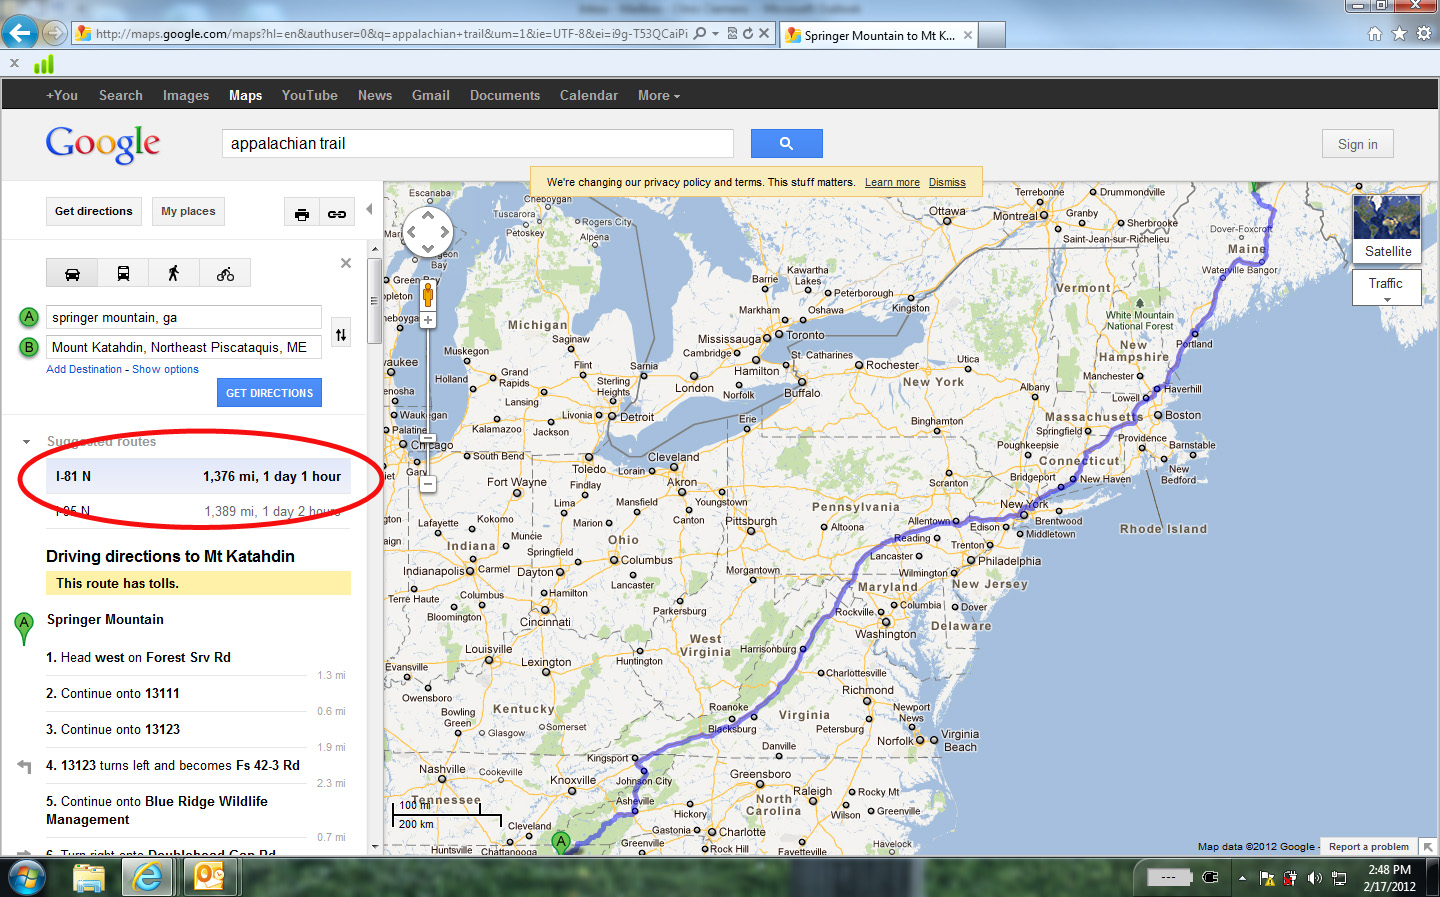 Driving+Directions Maine Appalachian Trail Map on mahoosuc trail map, mountains maine map, canada maine map, national parks maine map, at maine map, south portland maine map, grafton loop trail maine map, southwest maine map, waterfalls maine map, mahoosuc notch maine map, maine maine map, oxford maine map, maine its trail map, long trail map, at trail map, baxter state park trail map, pinnacle trail pa map, waterbury maine map, application trail shelter map, blue ridge mountain trail map,